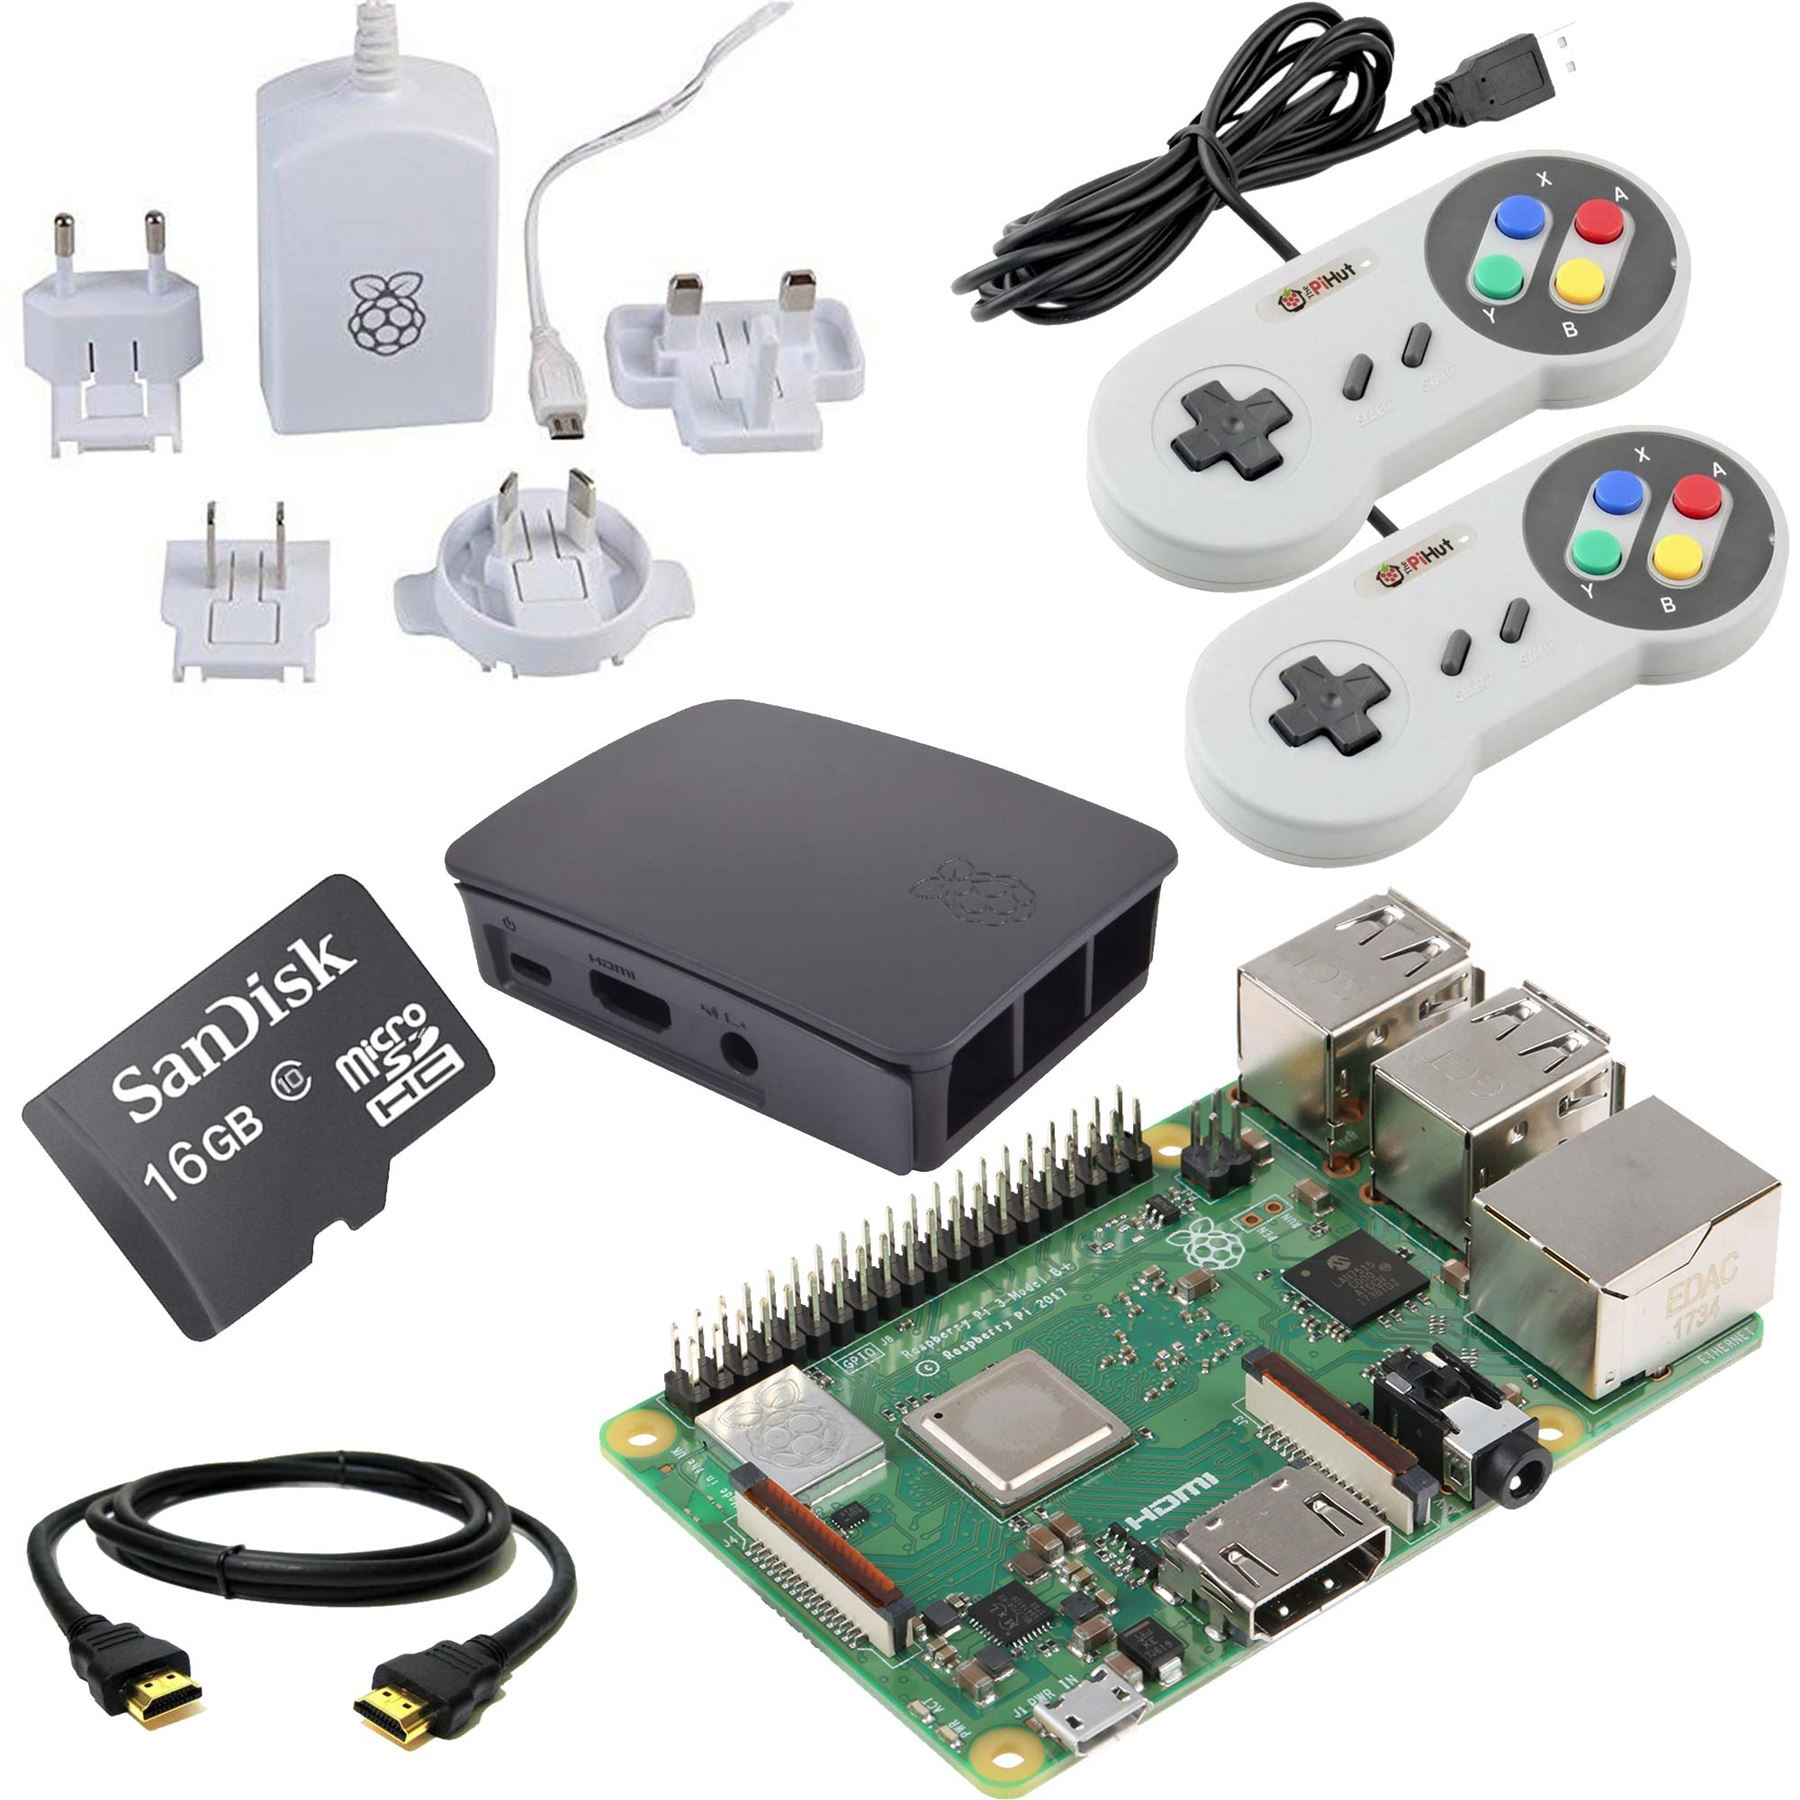 Details about Raspberry Pi 3 16GB Quad Core Retro Gaming Bundle (Latest  2018 Model 3B Plus)